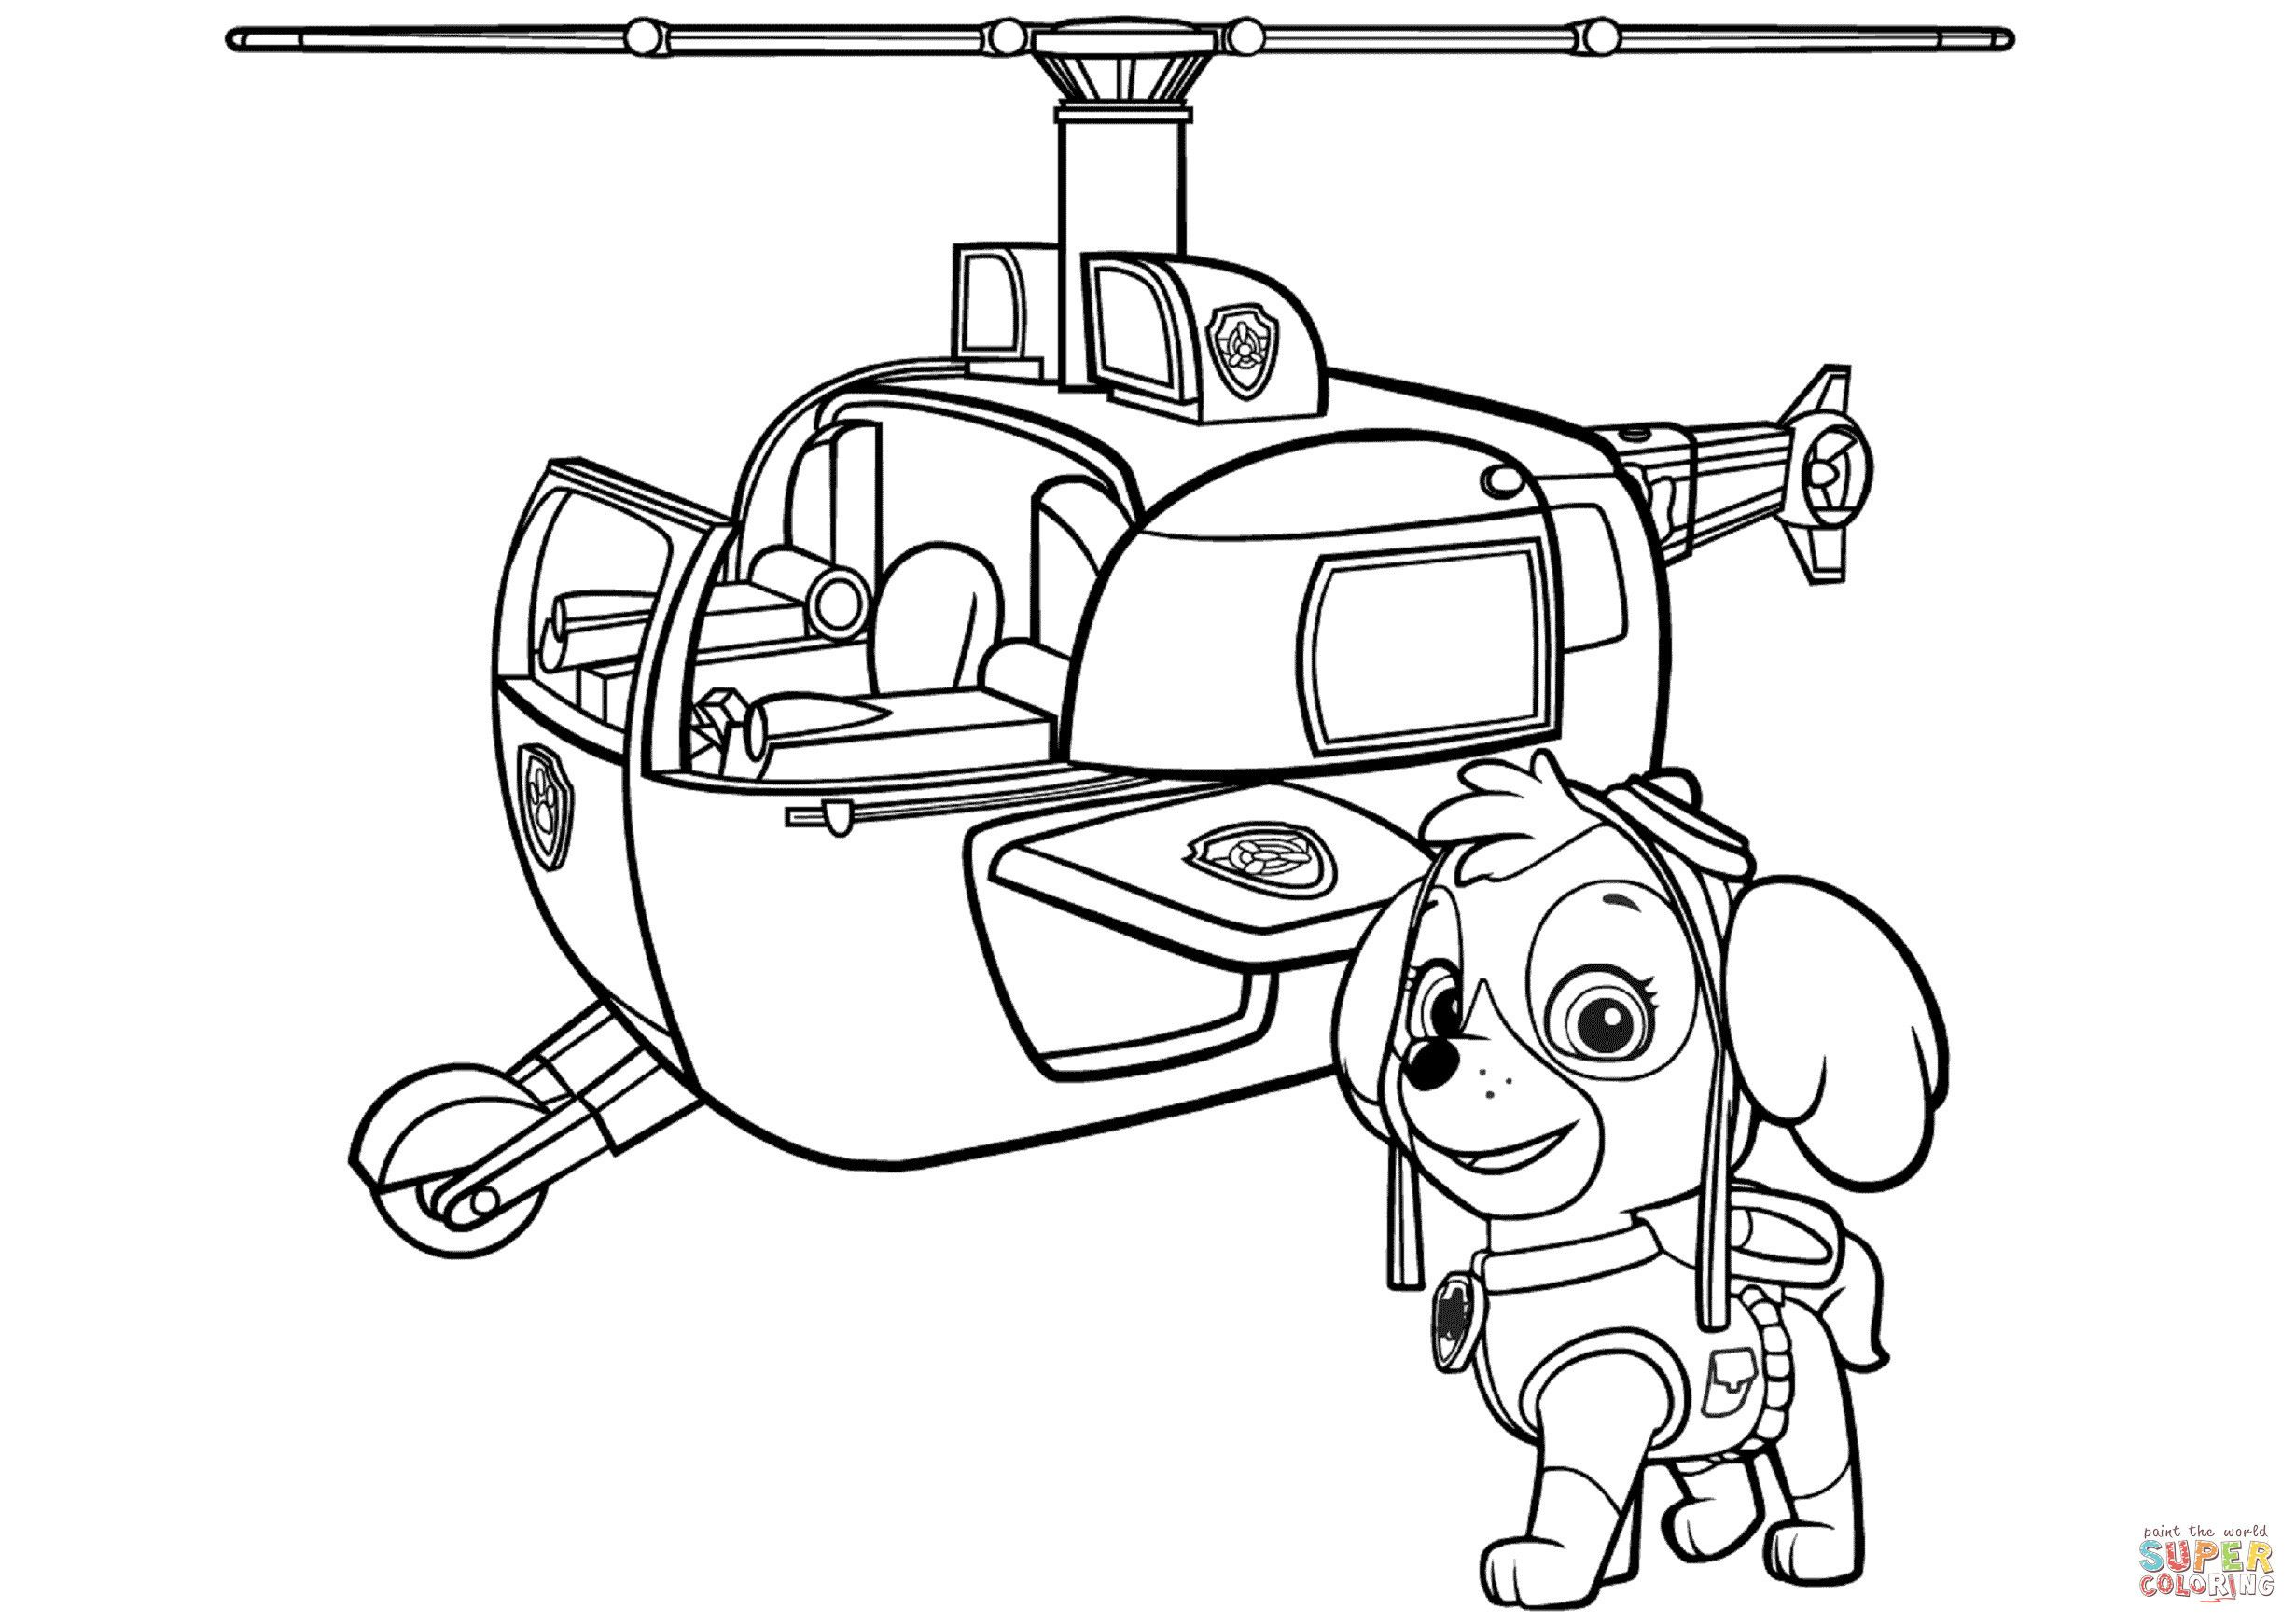 Easy Steps To Draw Paw Patrol Google Search Paw Patrol Coloring Paw Patrol Coloring Pages Airplane Coloring Pages